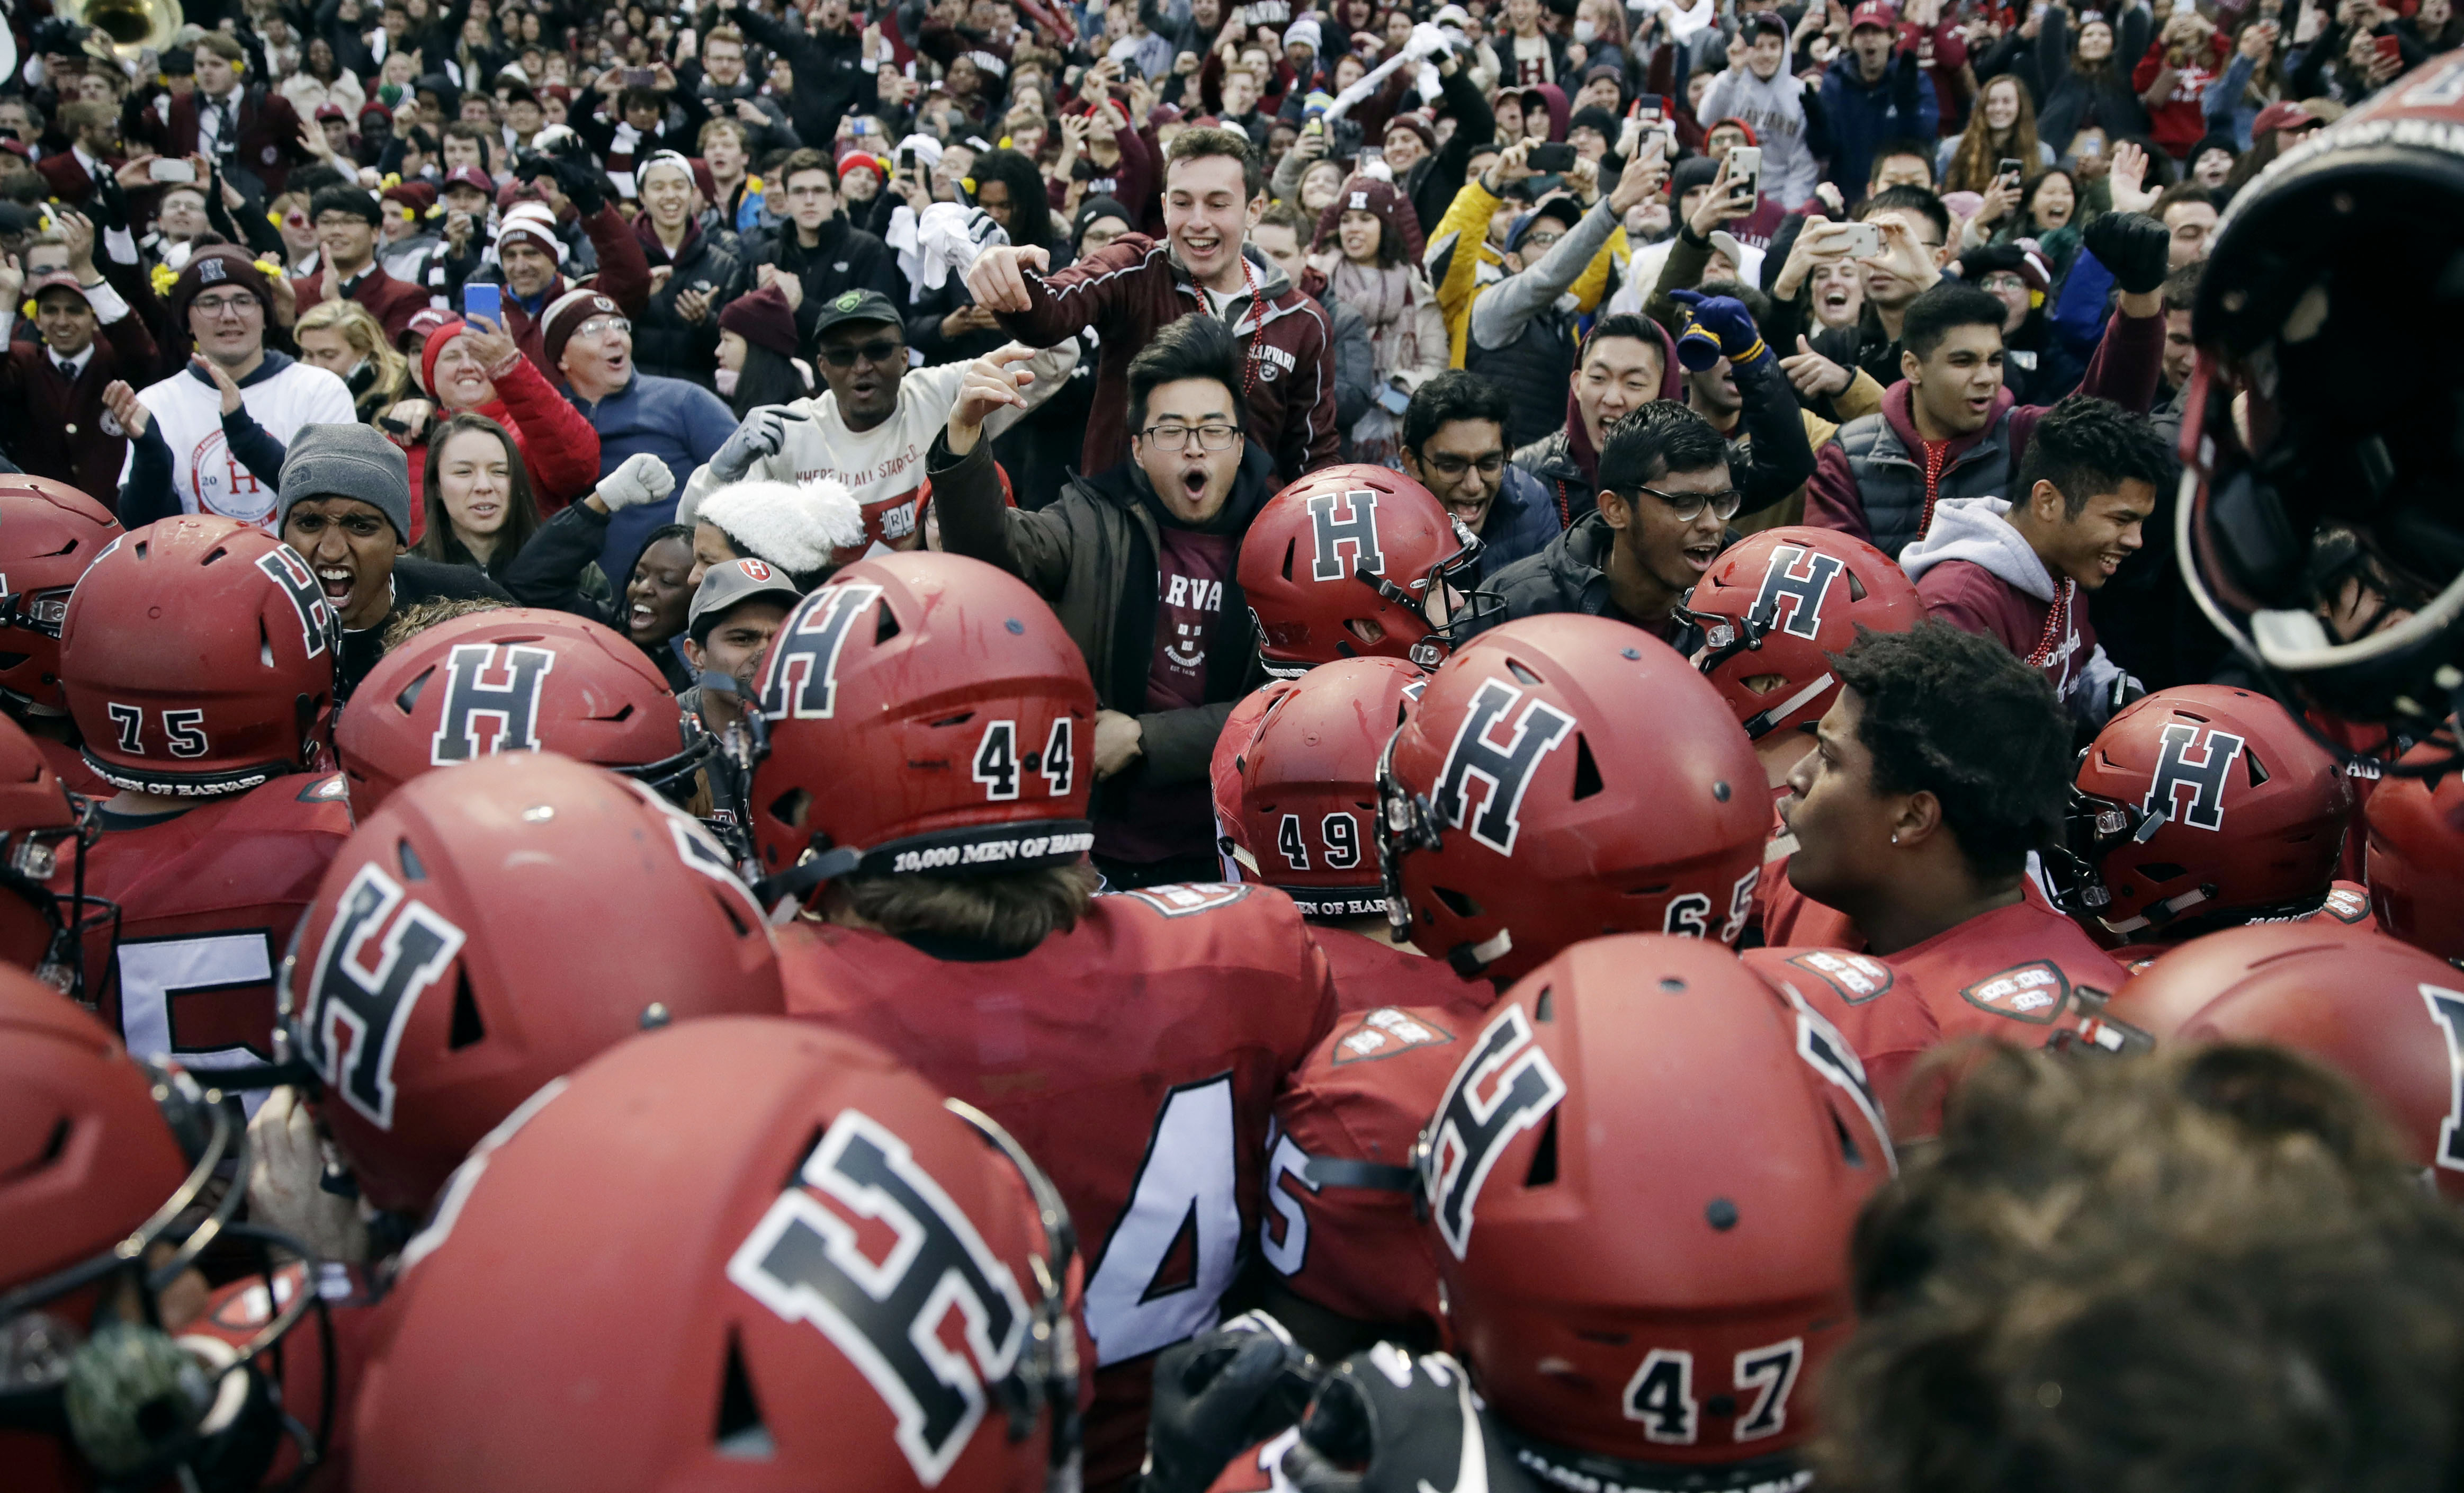 Harvard players, students and fans celebrate their 45-27 win over Yale after an NCAA college football game at Fenway Park in Boston on Nov. 17, 2018.